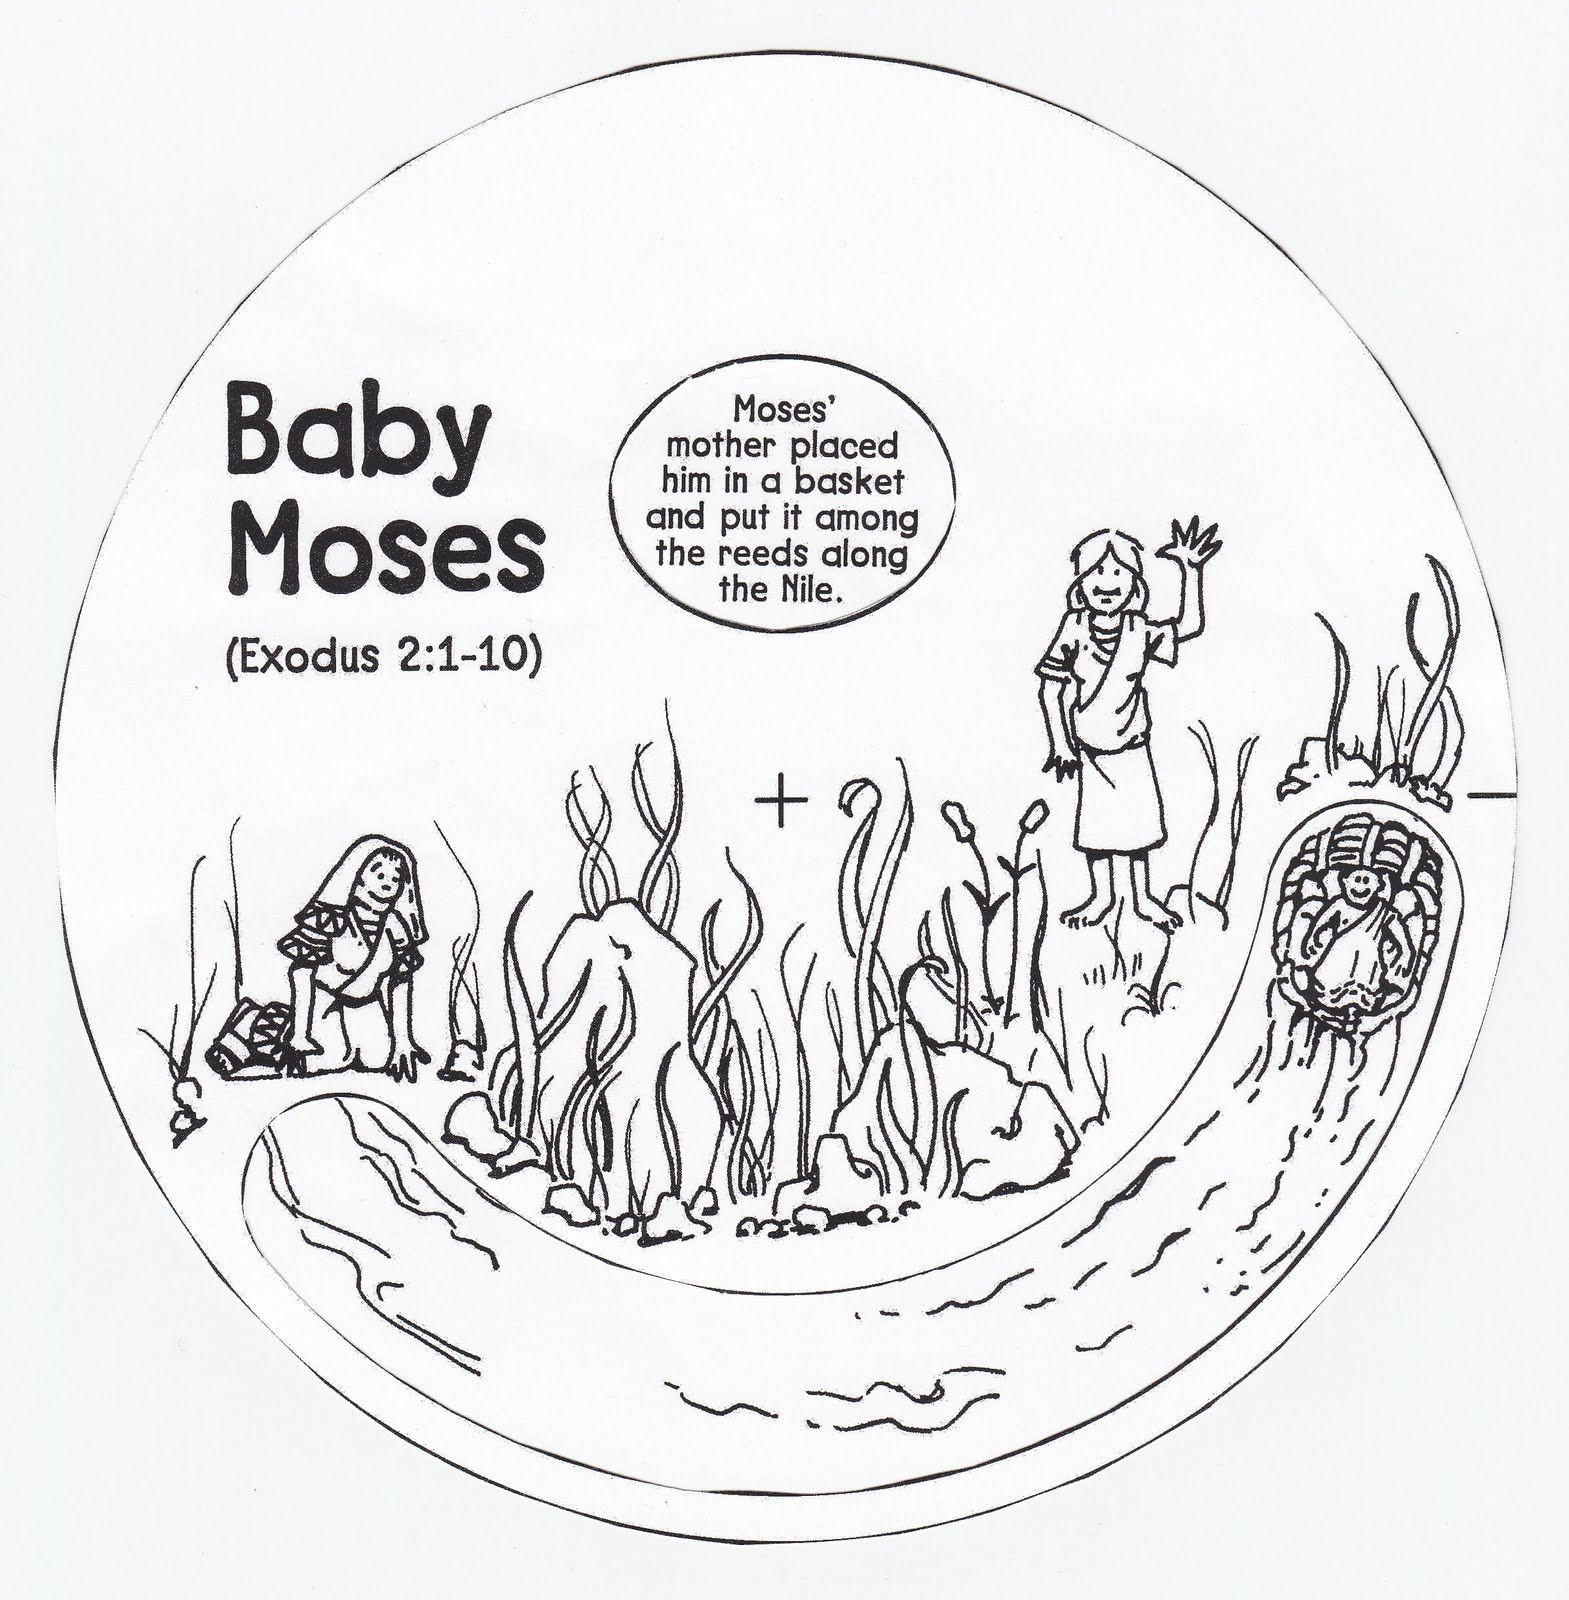 preschool crafts for baby moses google search bible stories moses pinterest baby moses